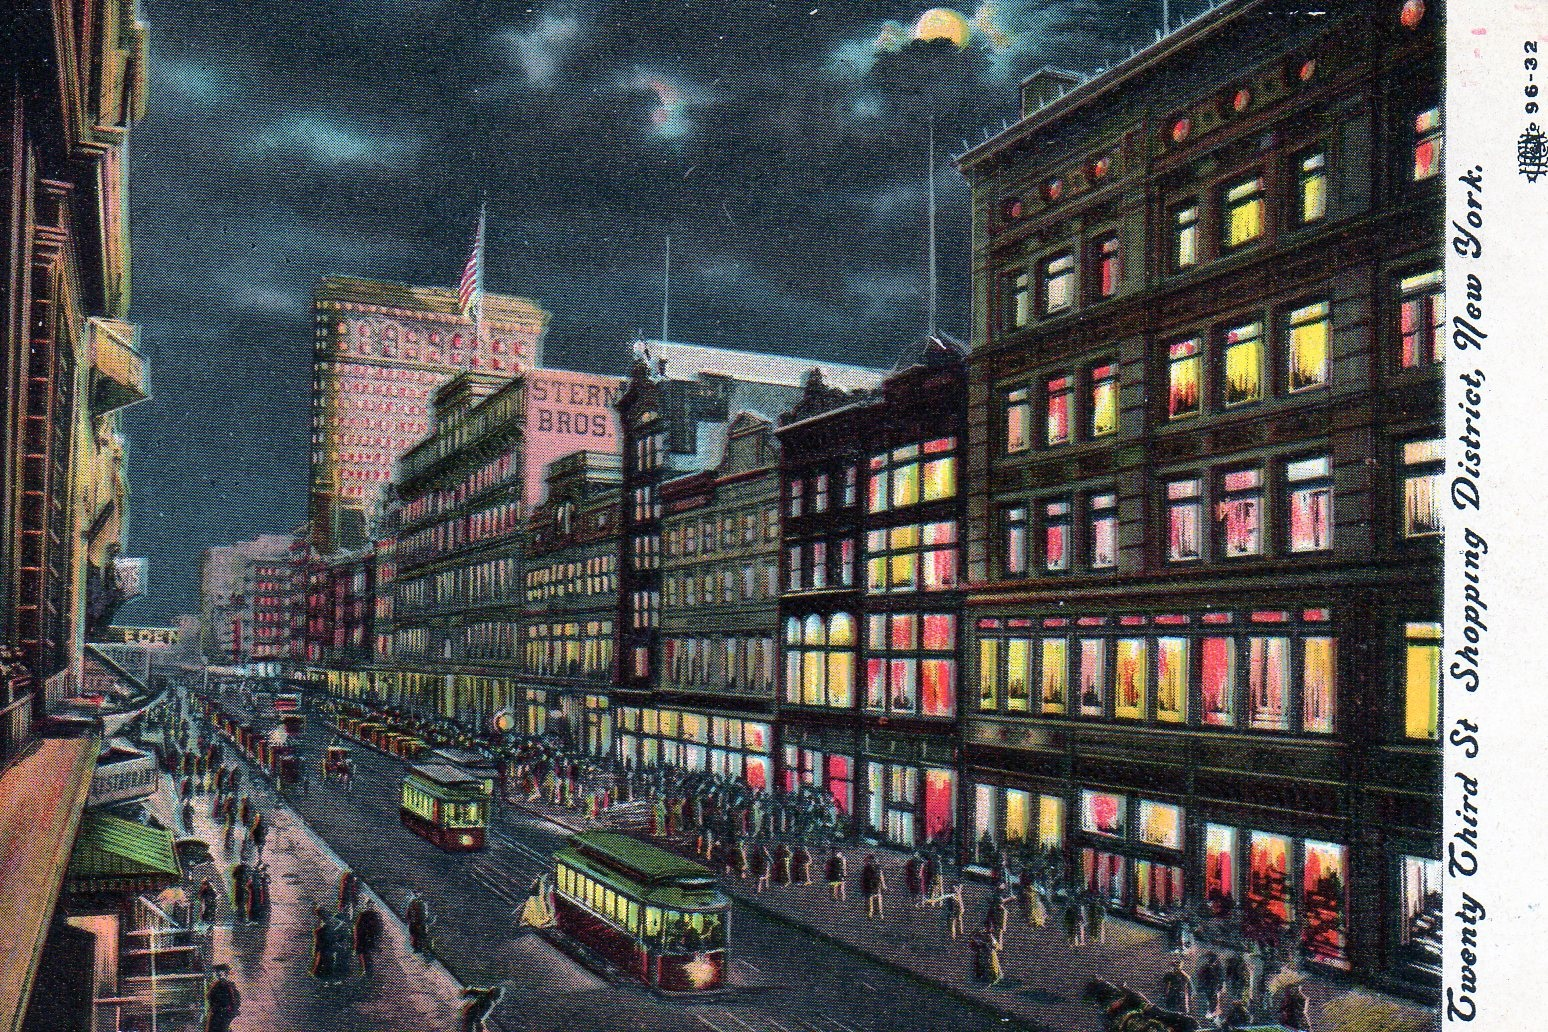 The 23rd street shopping district by night ephemeral for Home good stores nyc